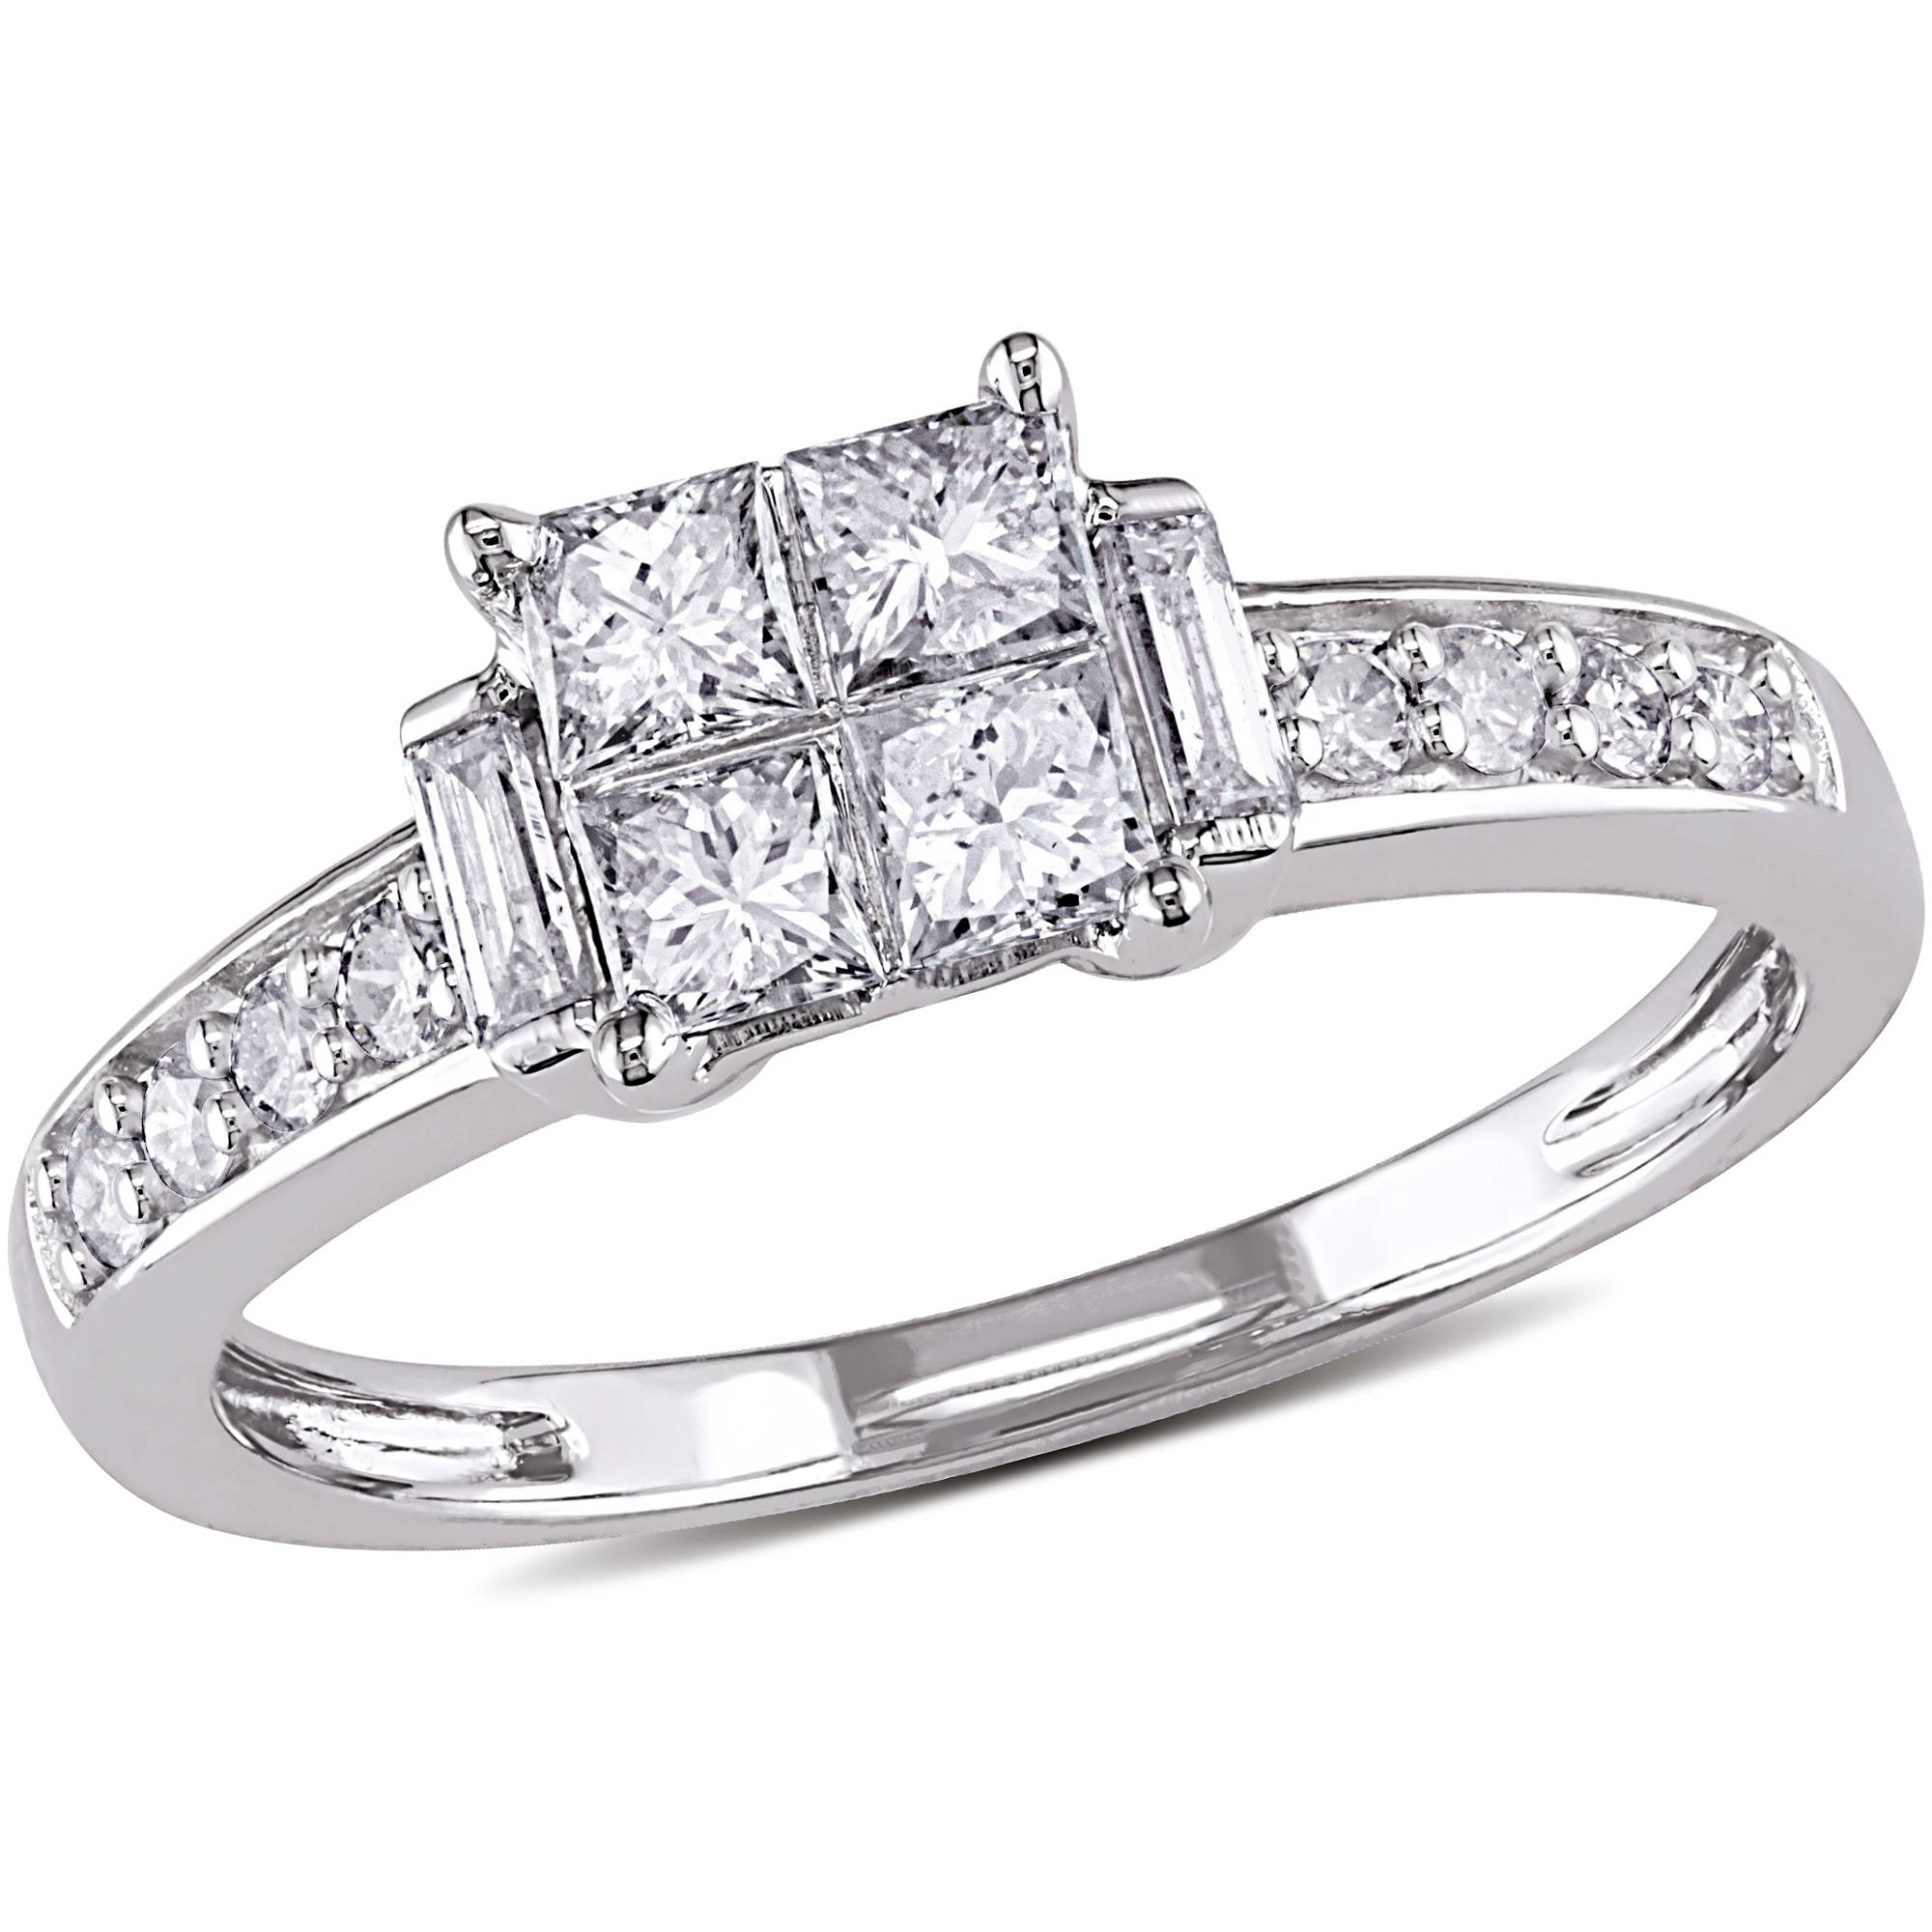 5/8 Carat T.W. Princess, Baguette and Round-Cut Diamond 14kt White Gold Engagement Ring